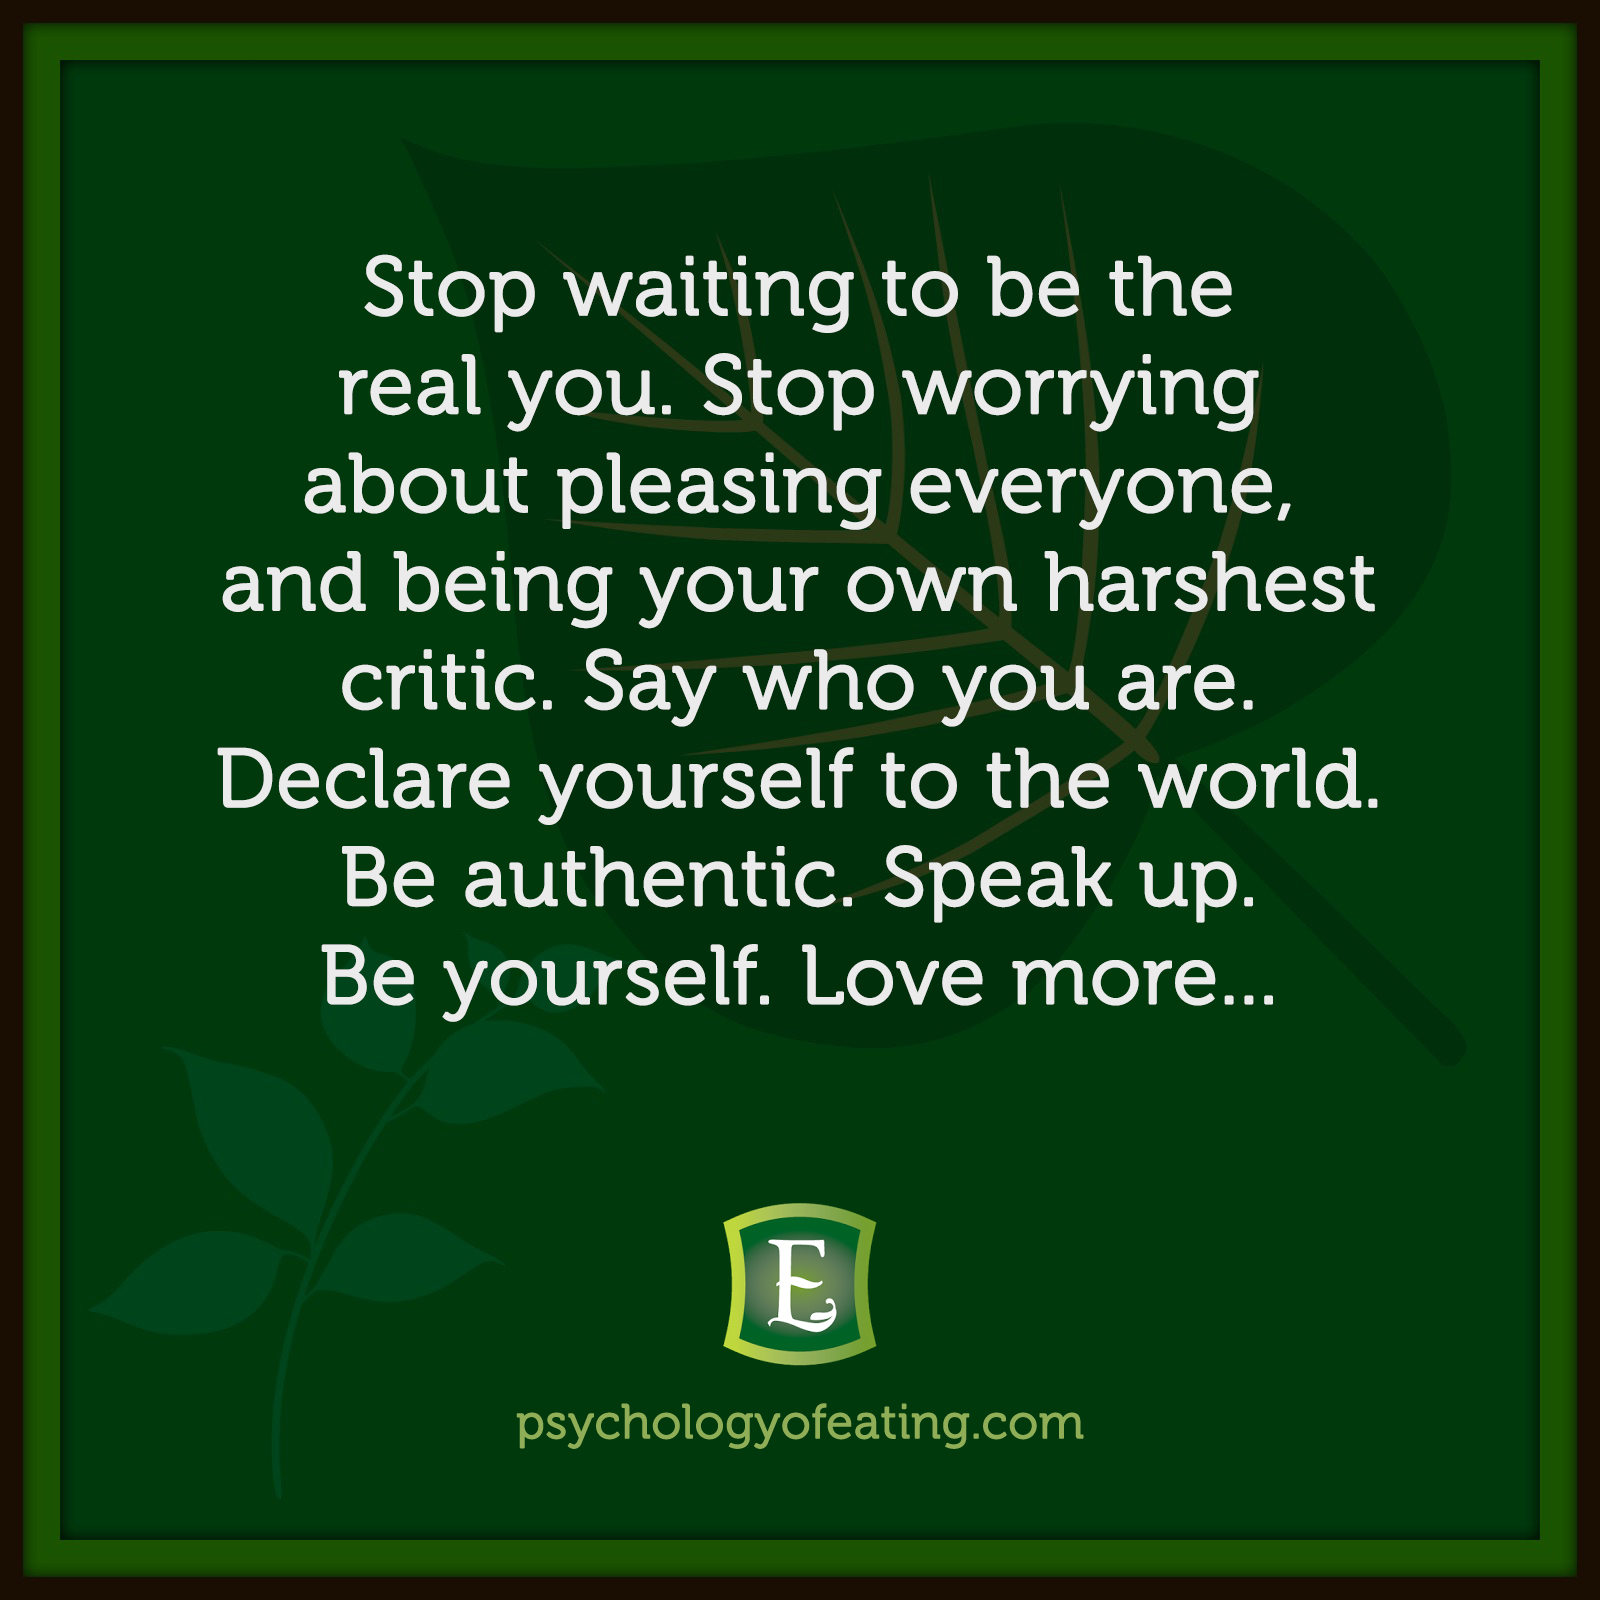 Stop waiting to be the real you. Stop worrying about pleasing everyone, and being your own harshest critic. Say who you are. Declare yourself to the world. Be authentic. Speak up. Be yourself. Love more... #health #nutrition #eatingpsychology #IPE